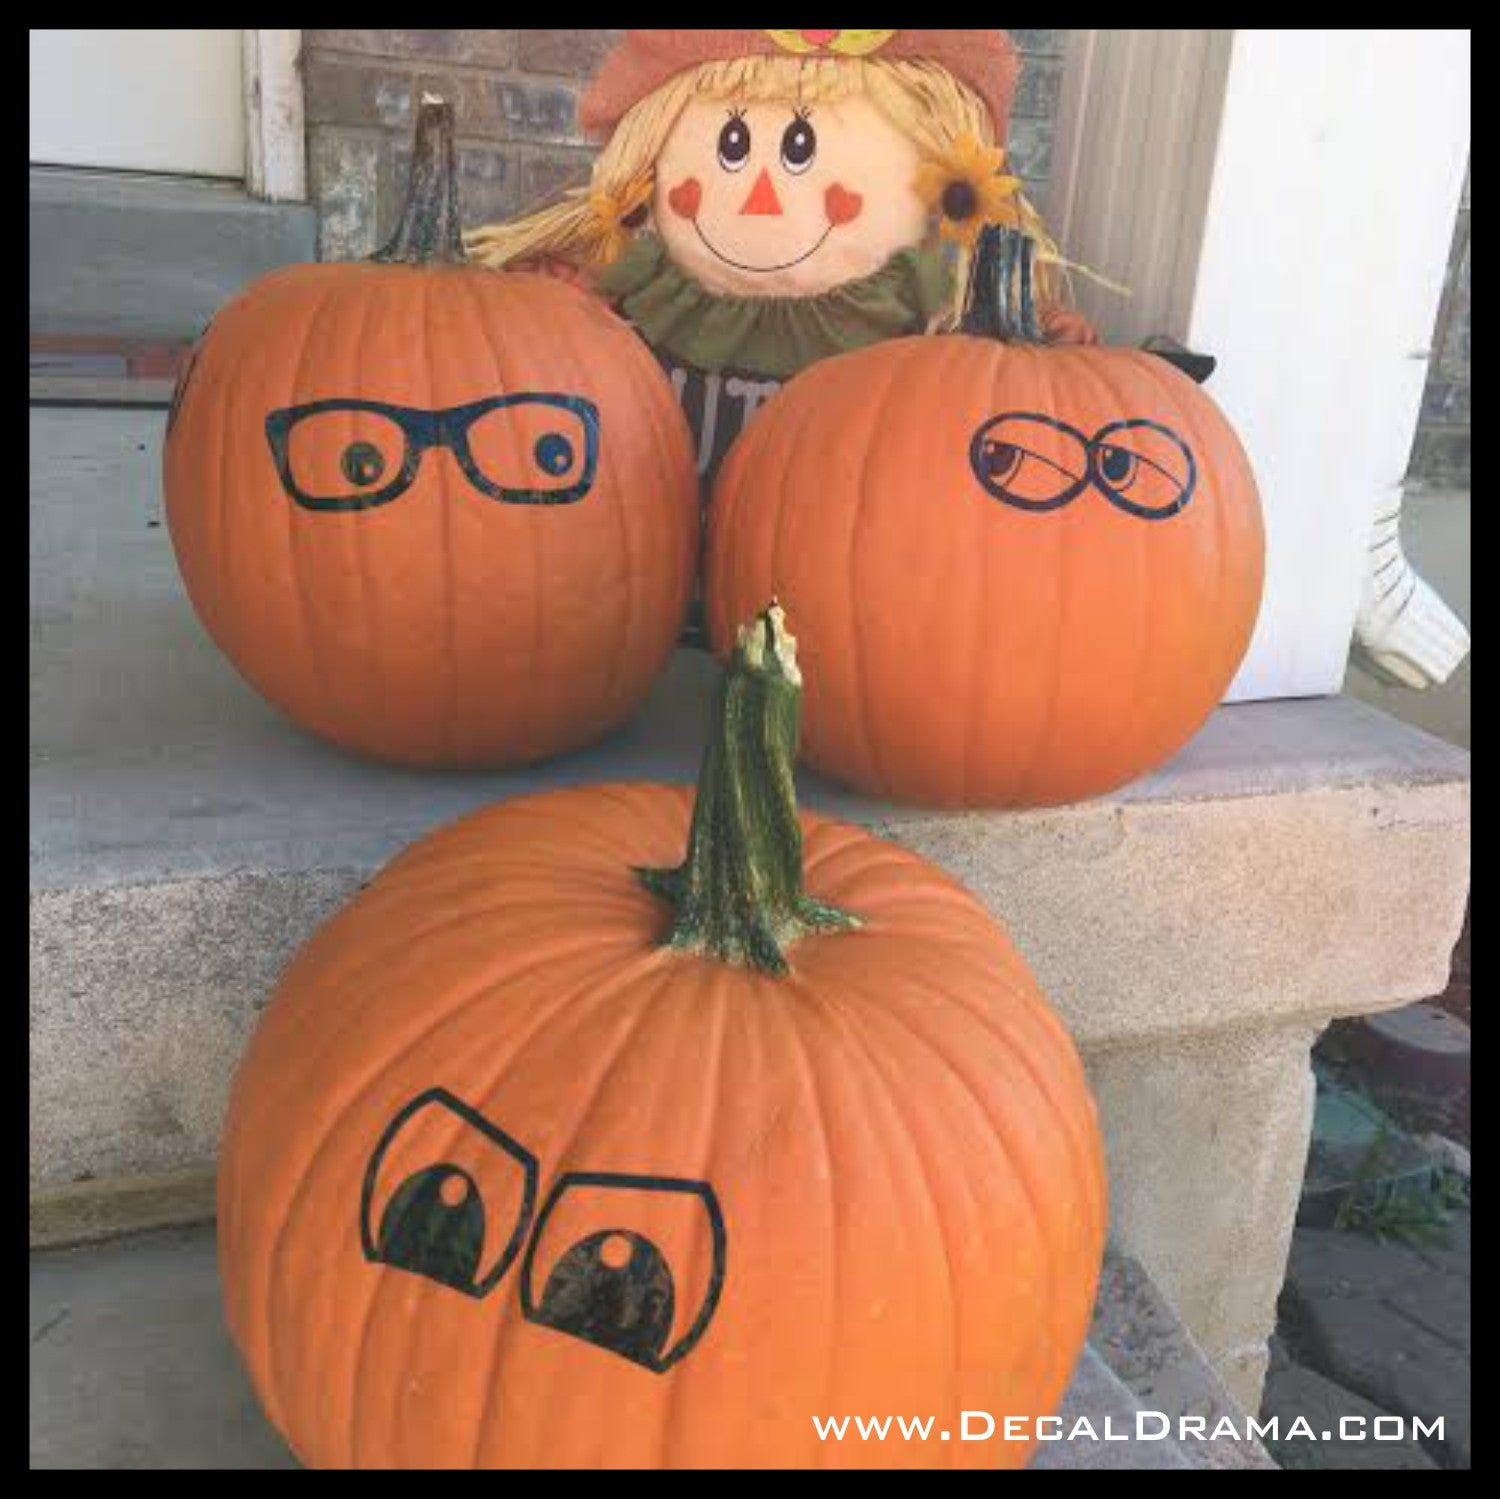 Goofy Eyes Set, Jack-O'Lantern Pumpkin Halloween Vinyl Wall Decal